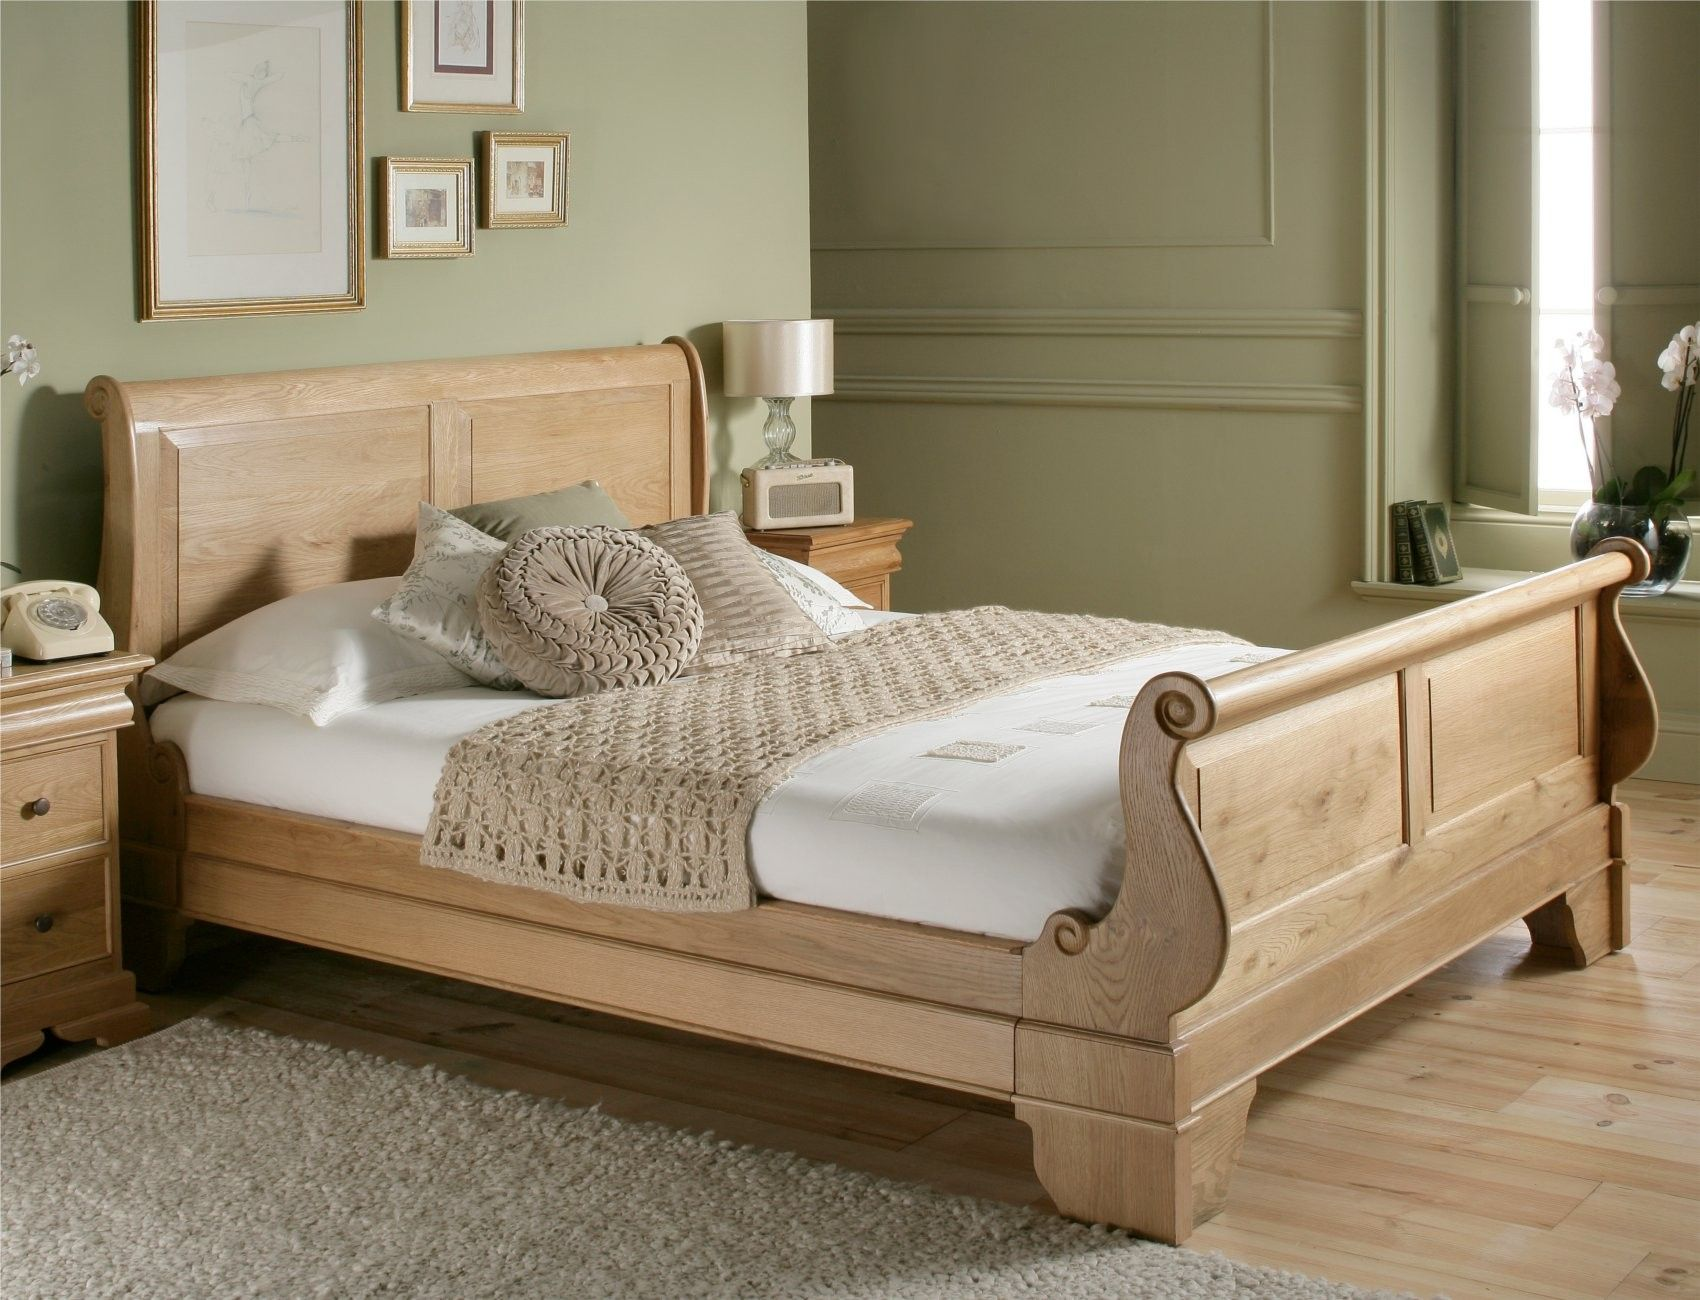 53+ Different Types of Beds, Frames, Styles That Will Go Perfectly with  Your Bedroom. Wooden Bed FramesWooden Sleigh ...